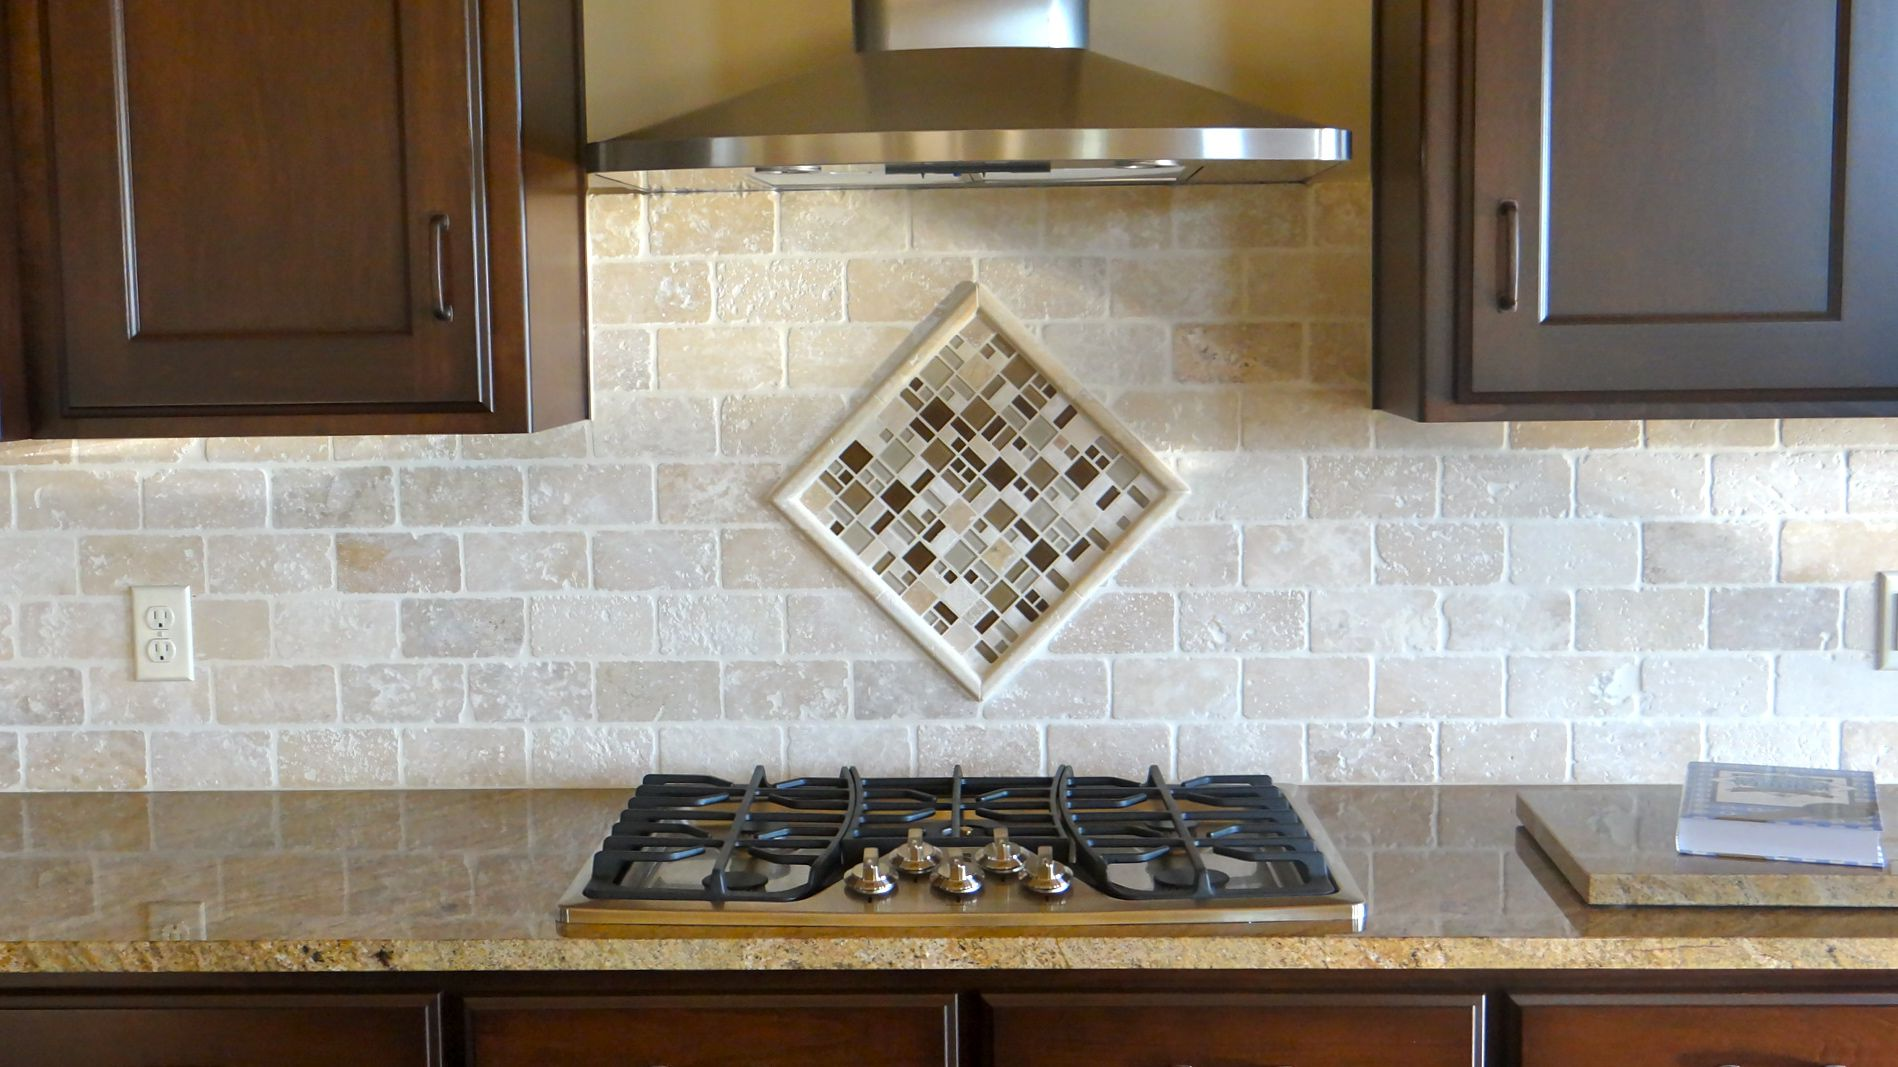 Tumbled travertine subway tiles accented with a single 12x12 mosaic tumbled travertine subway tiles accented with a single 12x12 mosaic sheet set on point and framed dailygadgetfo Gallery